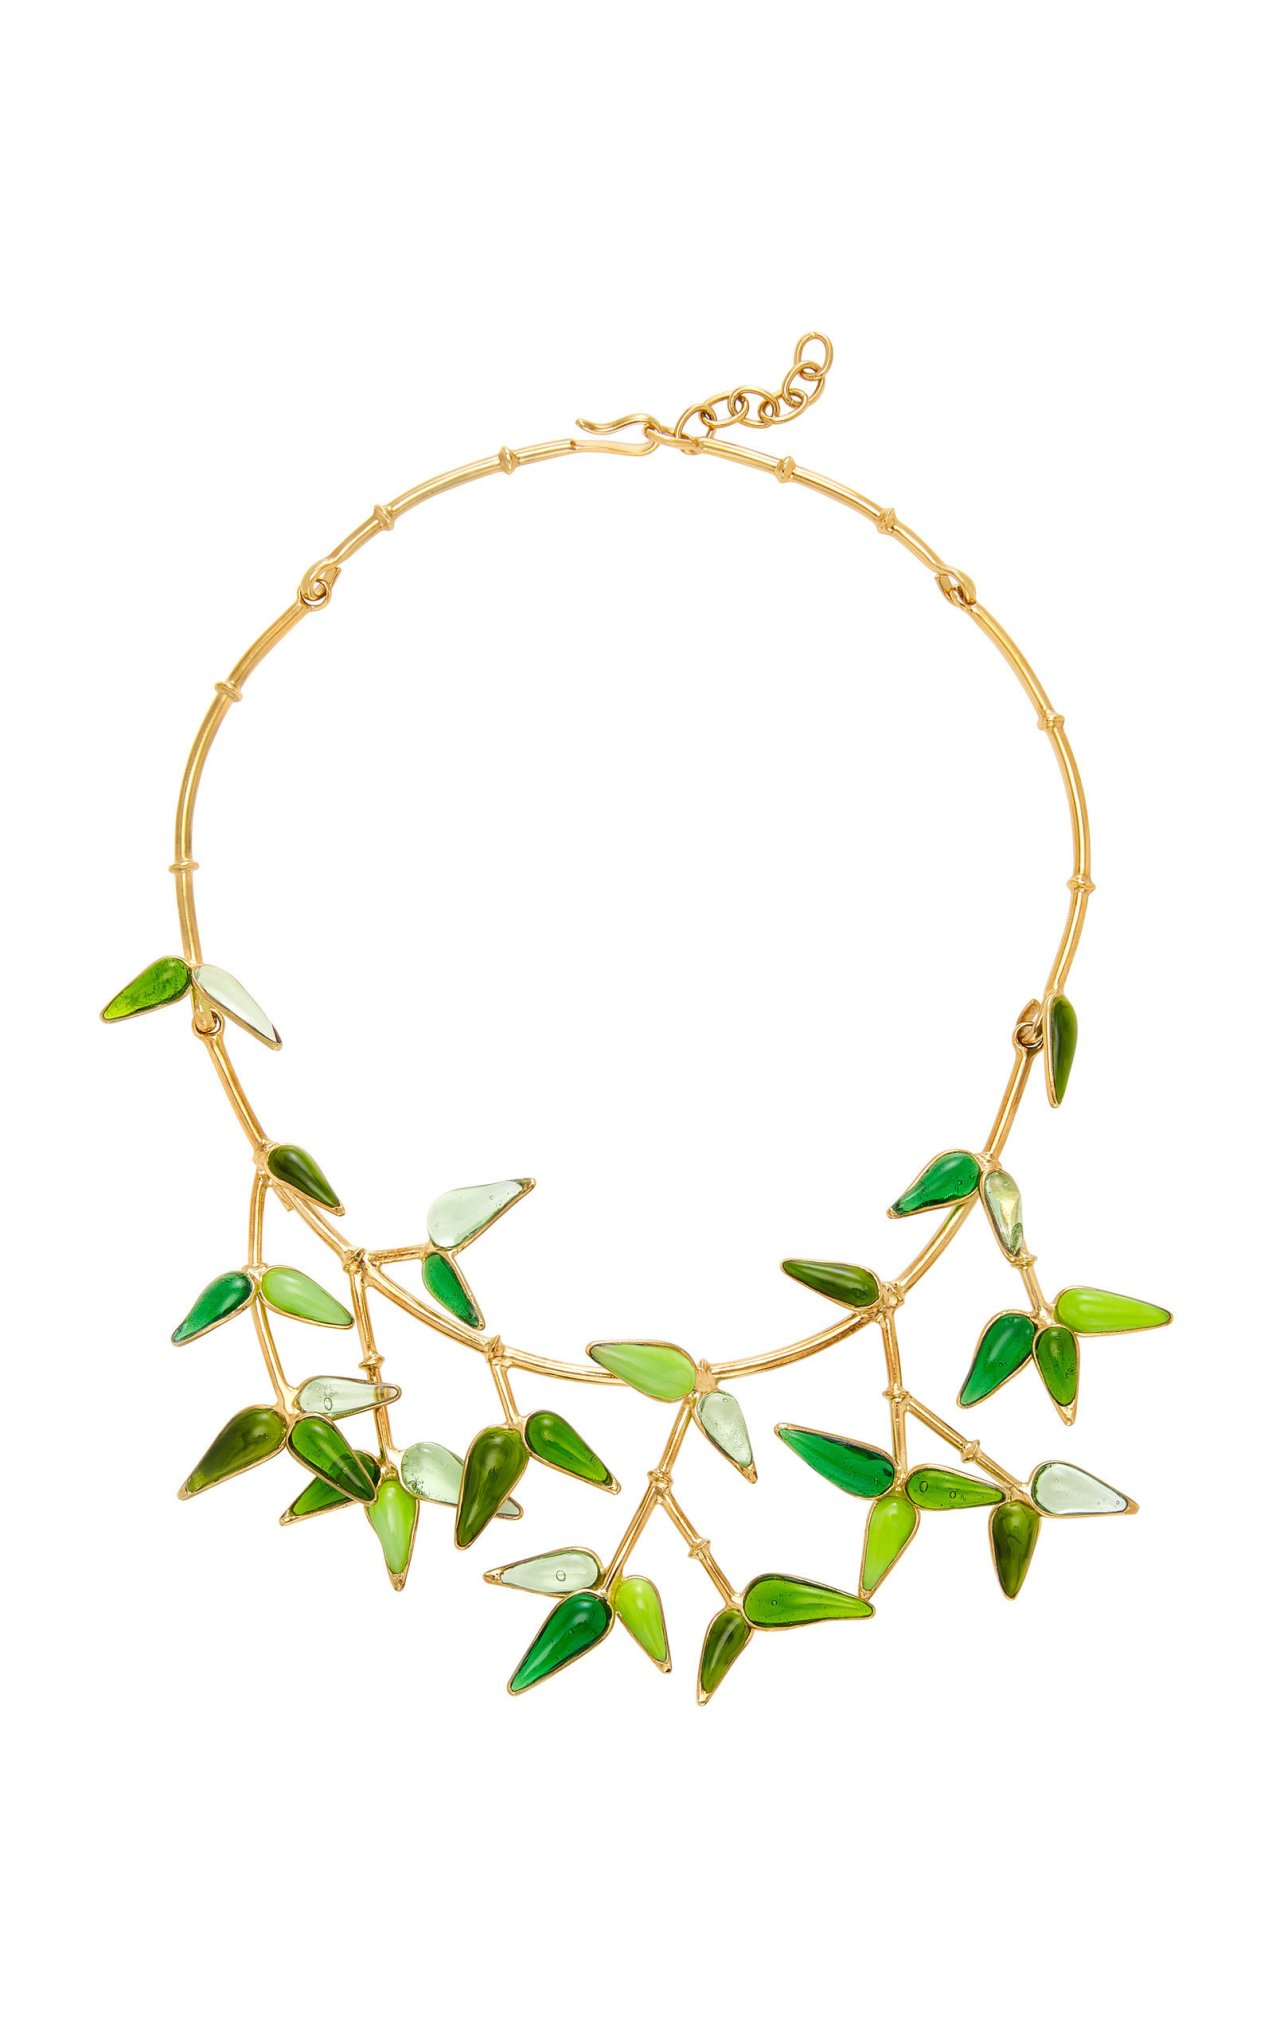 large_gripoix-green-bamboo-short-24k-gold-plated-brass-and-poured-glass-necklace